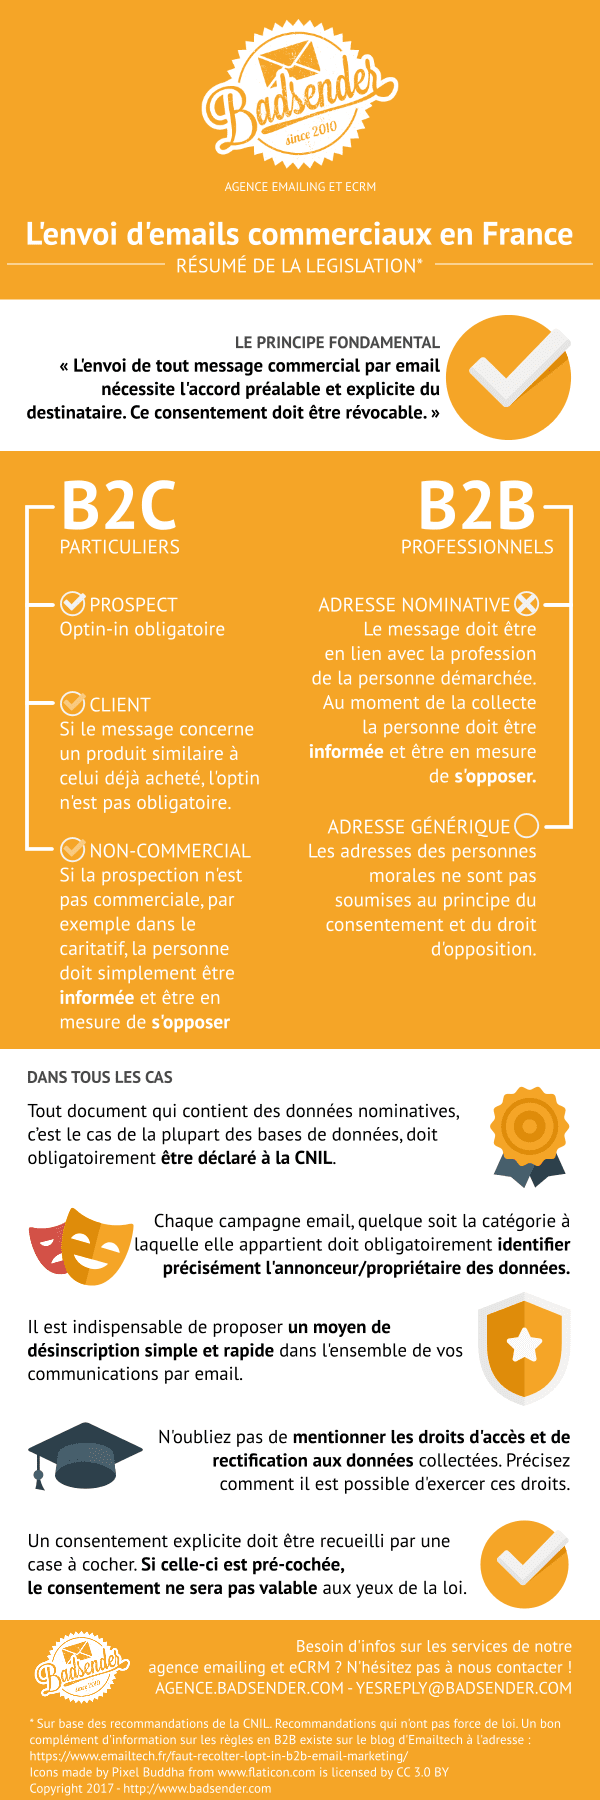 legislation-envoi-emailing-france